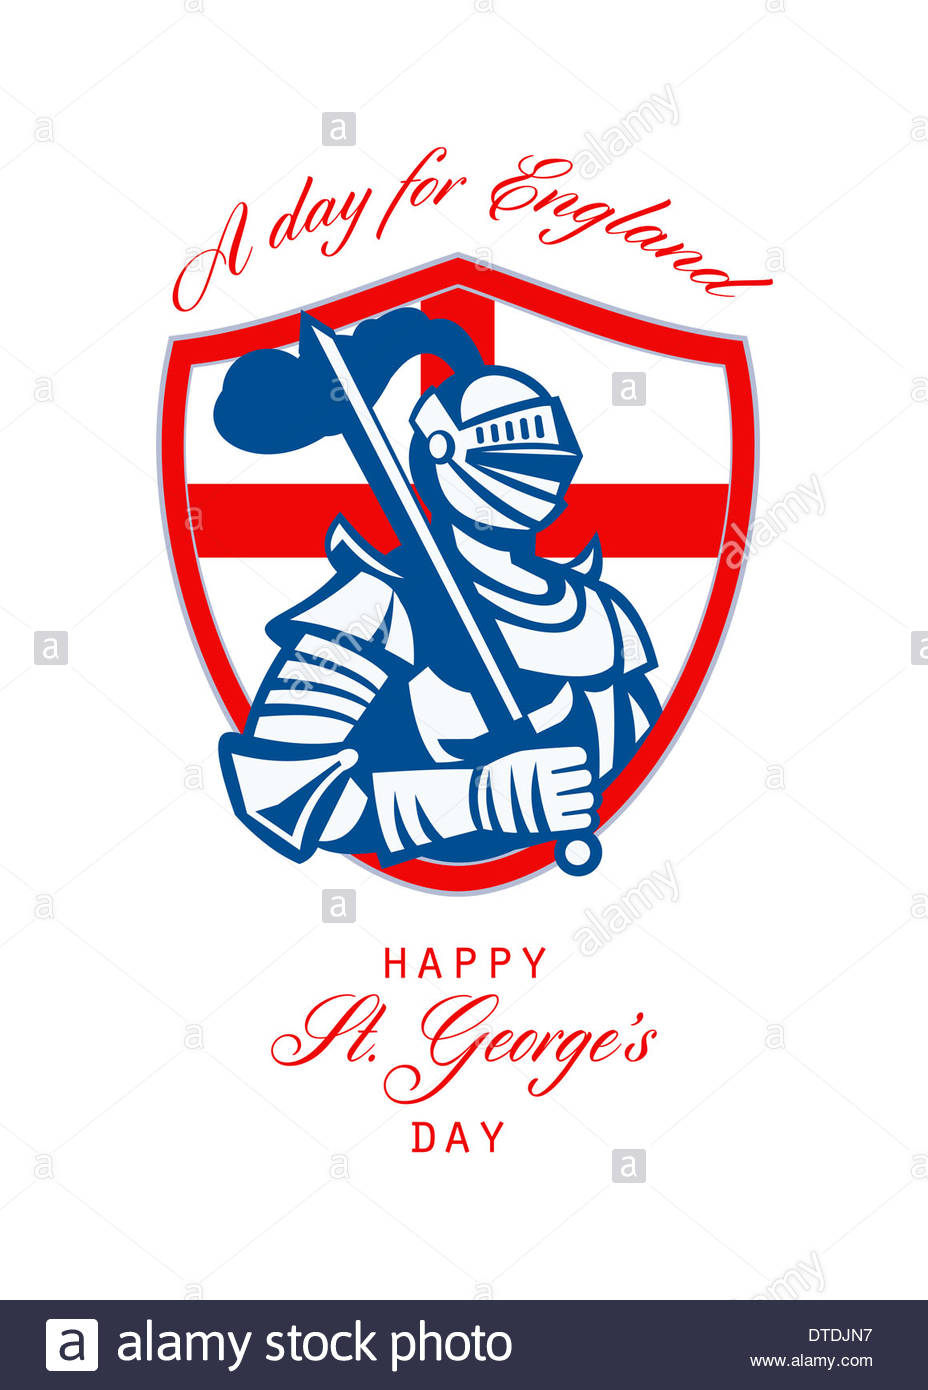 Poster Greeting Card Illustration Of Knight In Full Armor With.